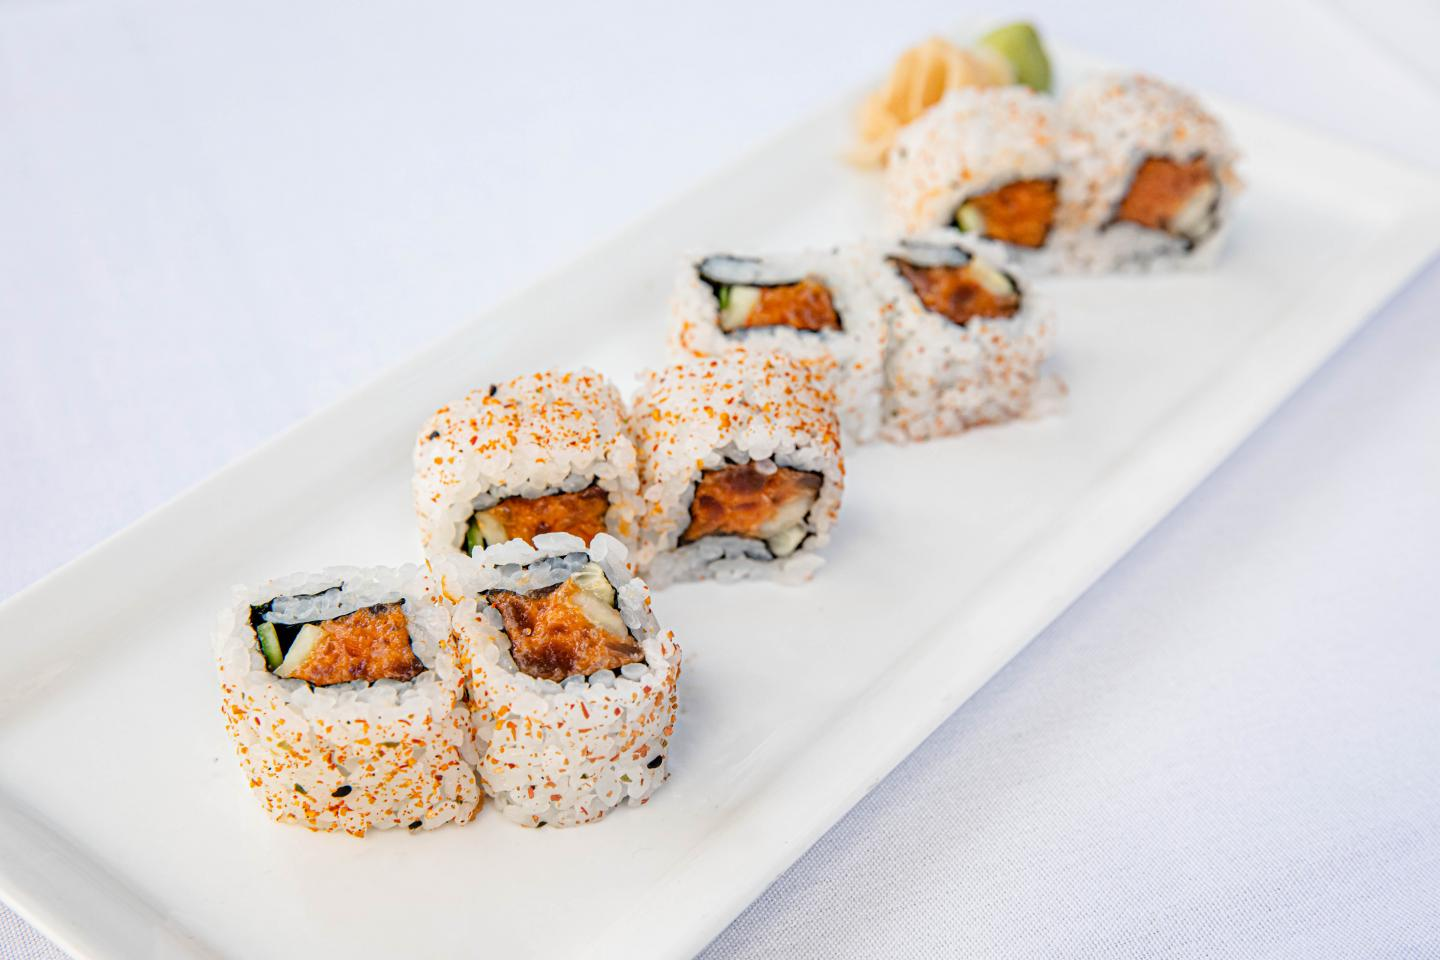 Shaw's Spicy Tuna Roll